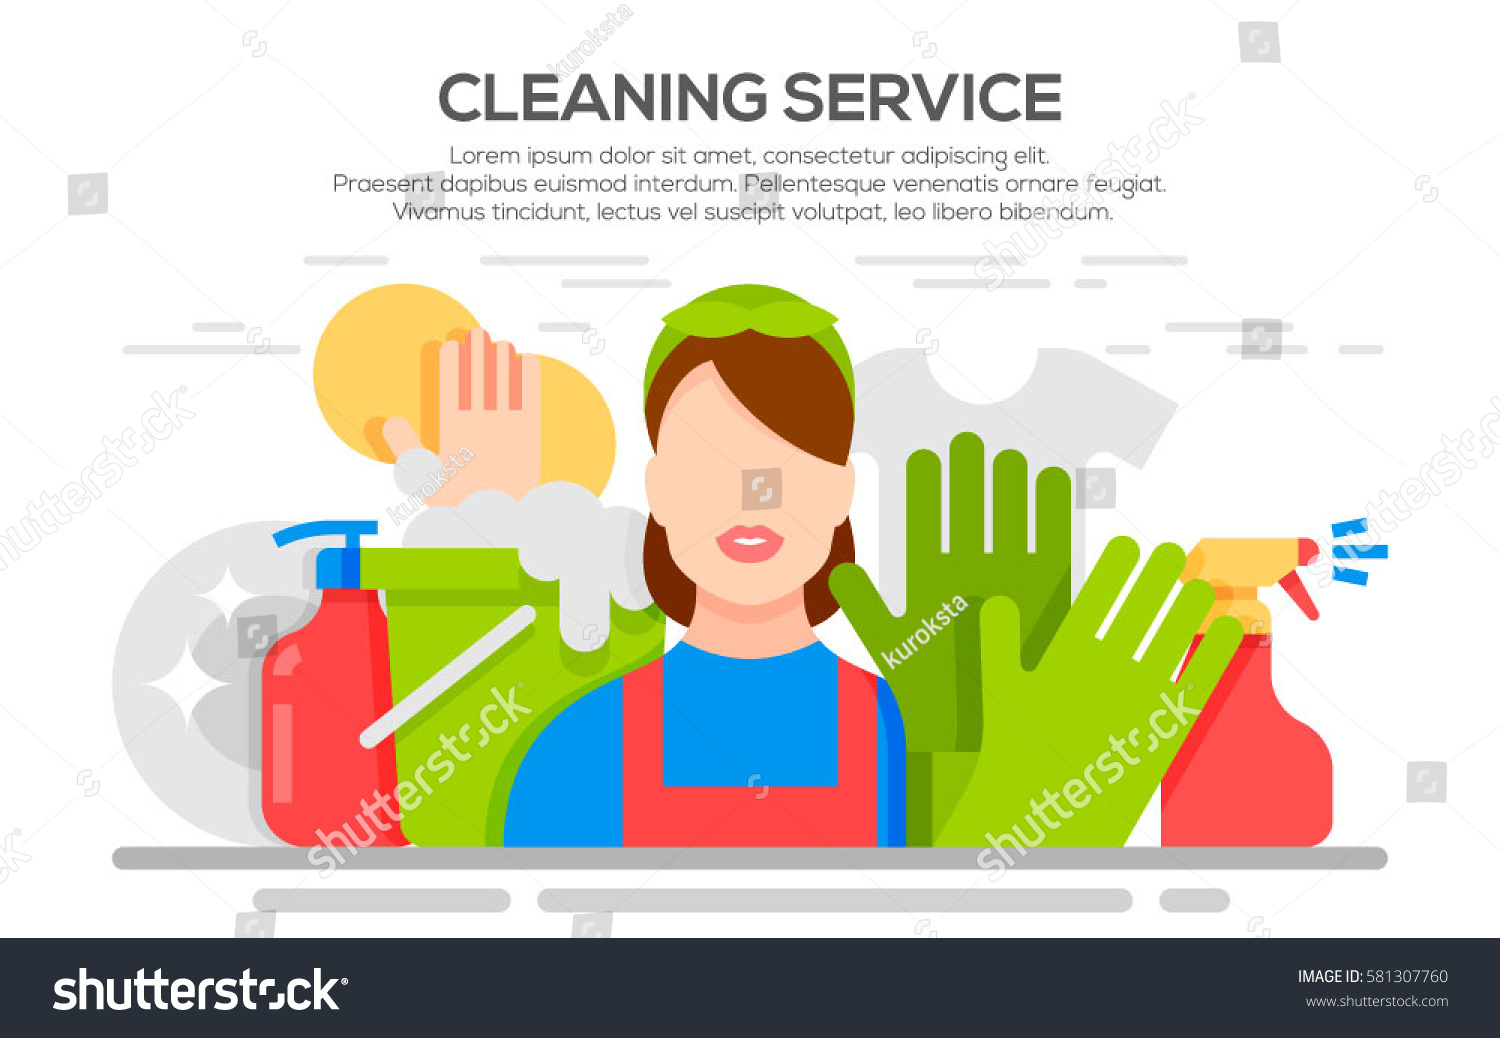 Cleaning Service Flat Illustration Poster Template Stock